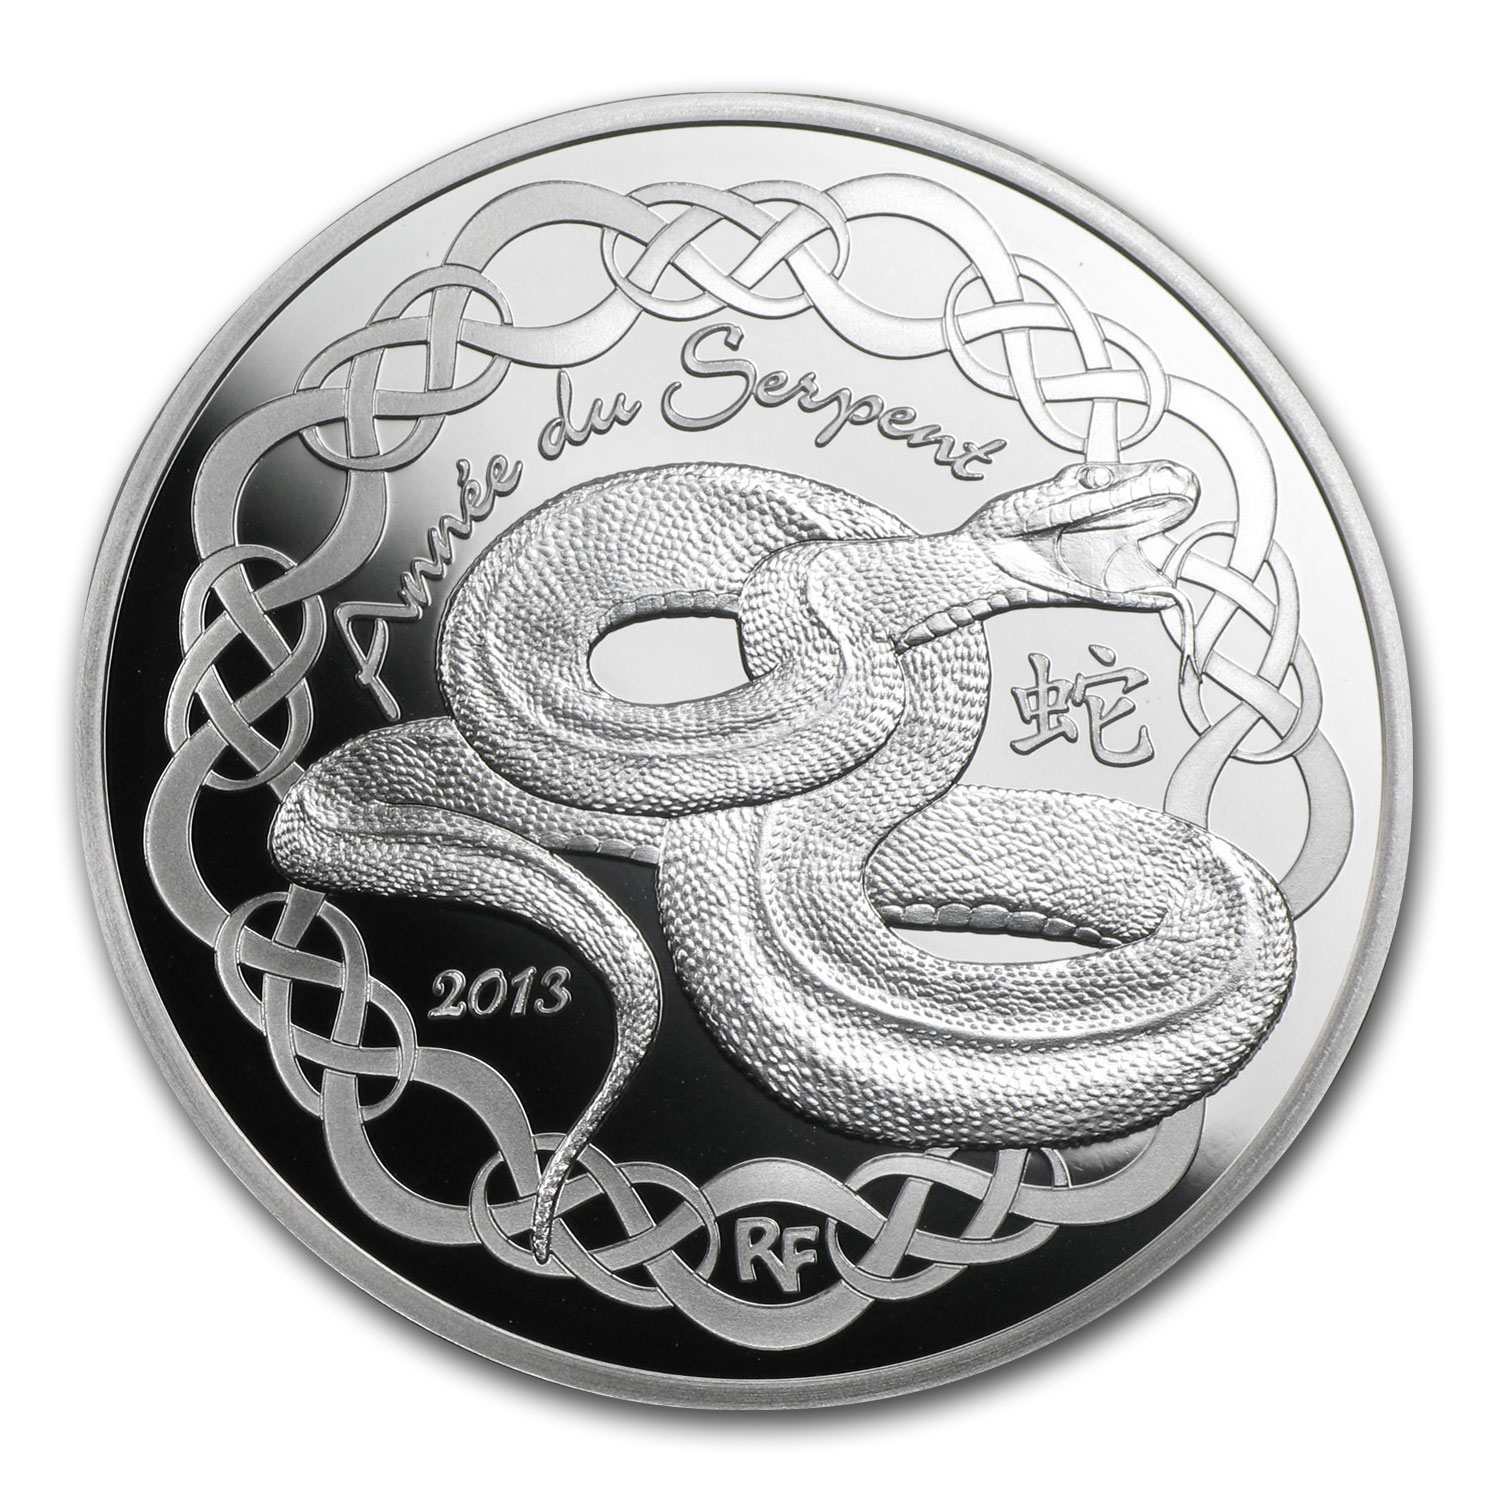 2013 France Silver €10 Year of the Snake Proof (Lunar Series)